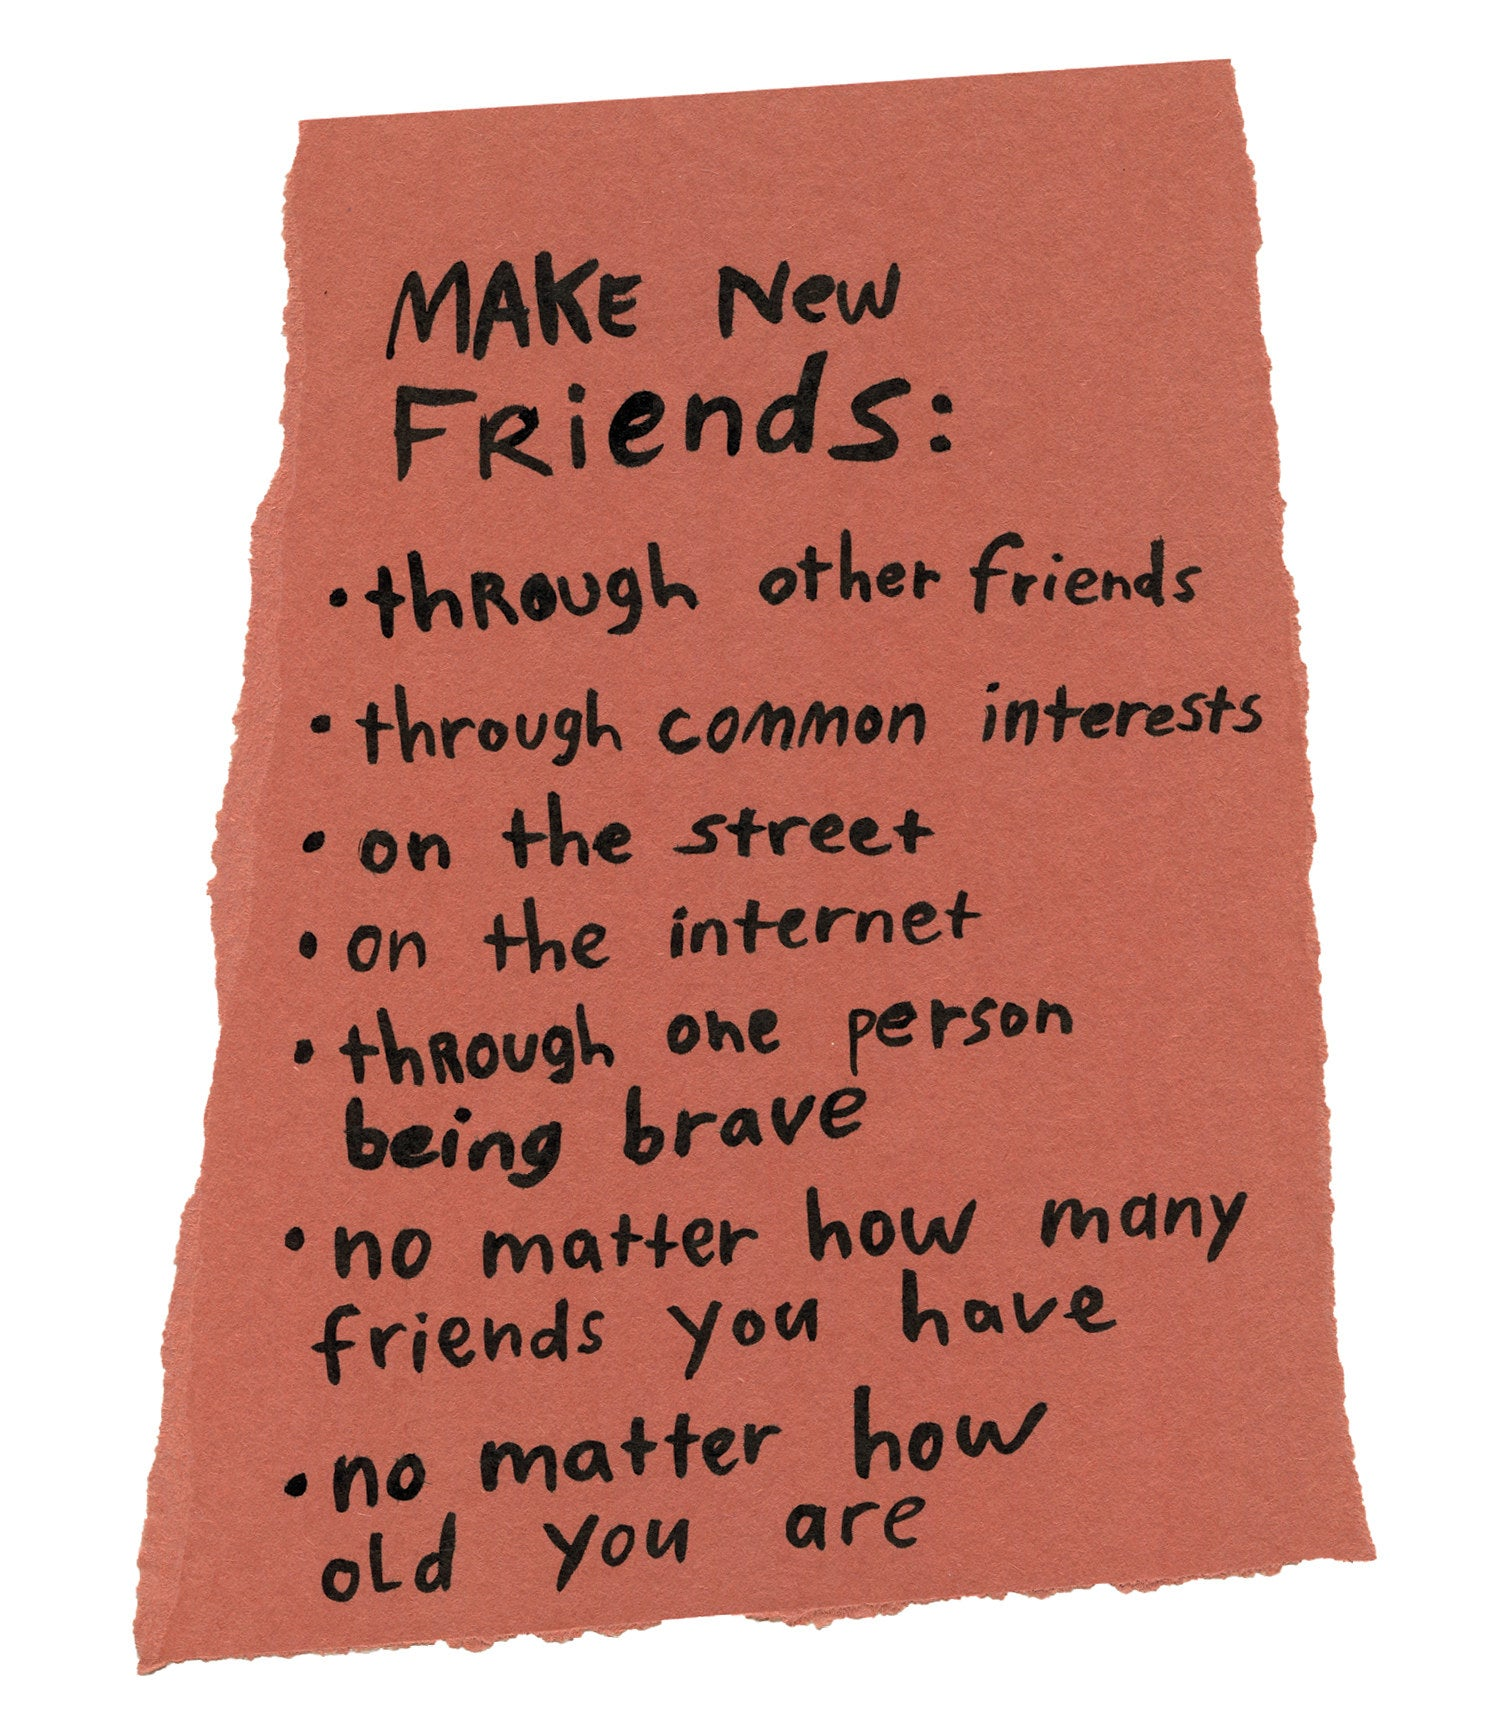 """Handwritten list on torn piece of paper: """"Make new friends: through other friends; through common interests; on the street; on the internet; through one person being brave; no matter how many friends you have; no matter how old you are."""""""